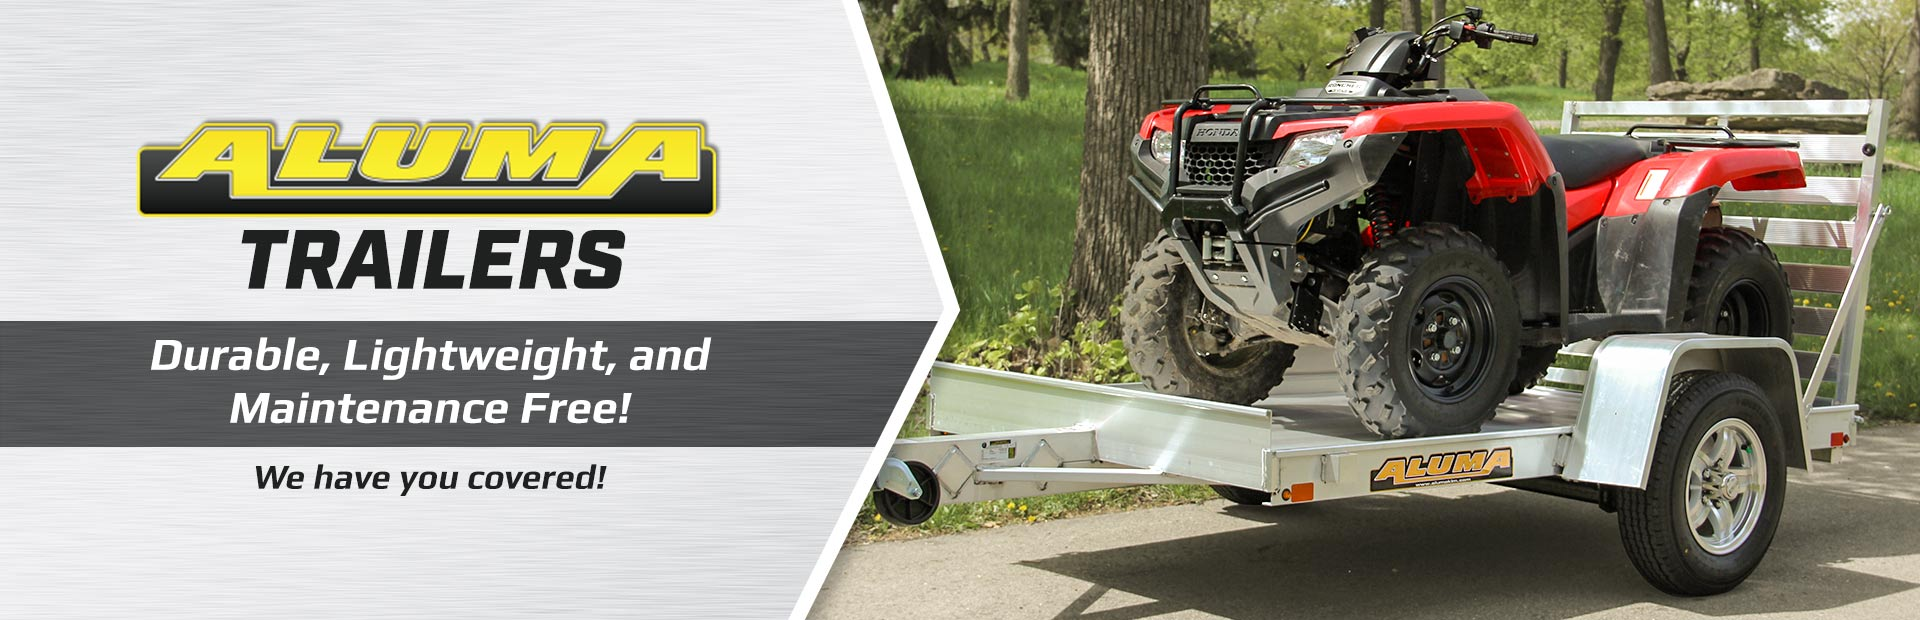 Aluma trailers are durable, lightweight, and maintenance free! Contact us for details.